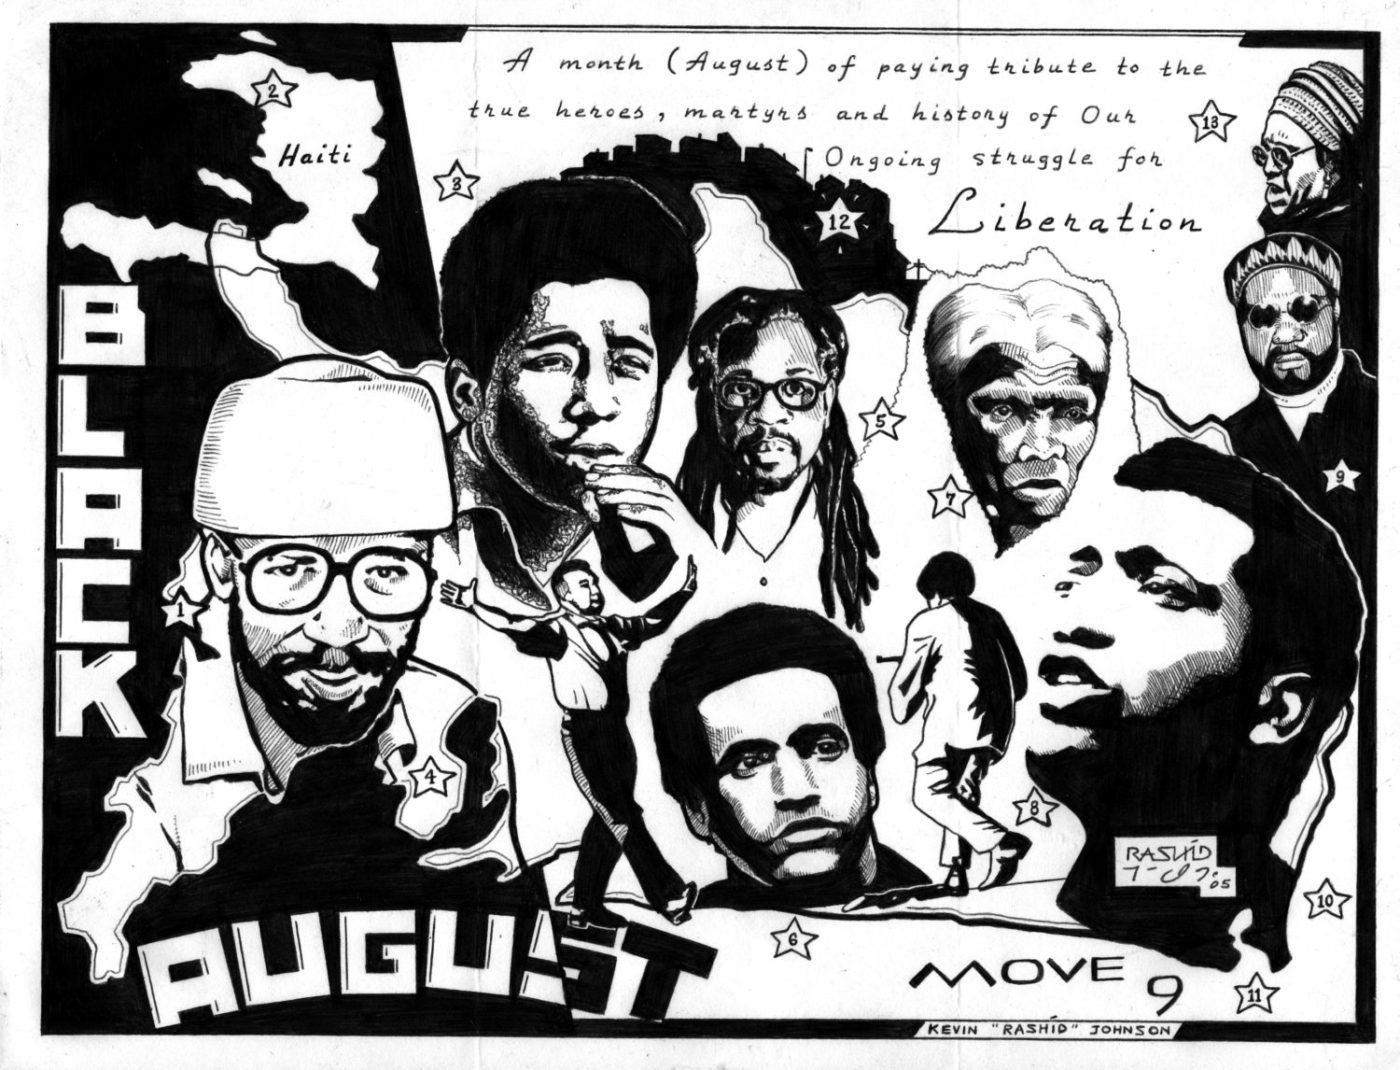 Black-August-art-by-Kevin-Rashid-Johnson-1-1400x1070, Black August 2020: All eyes on us to save our youth, Behind Enemy Lines